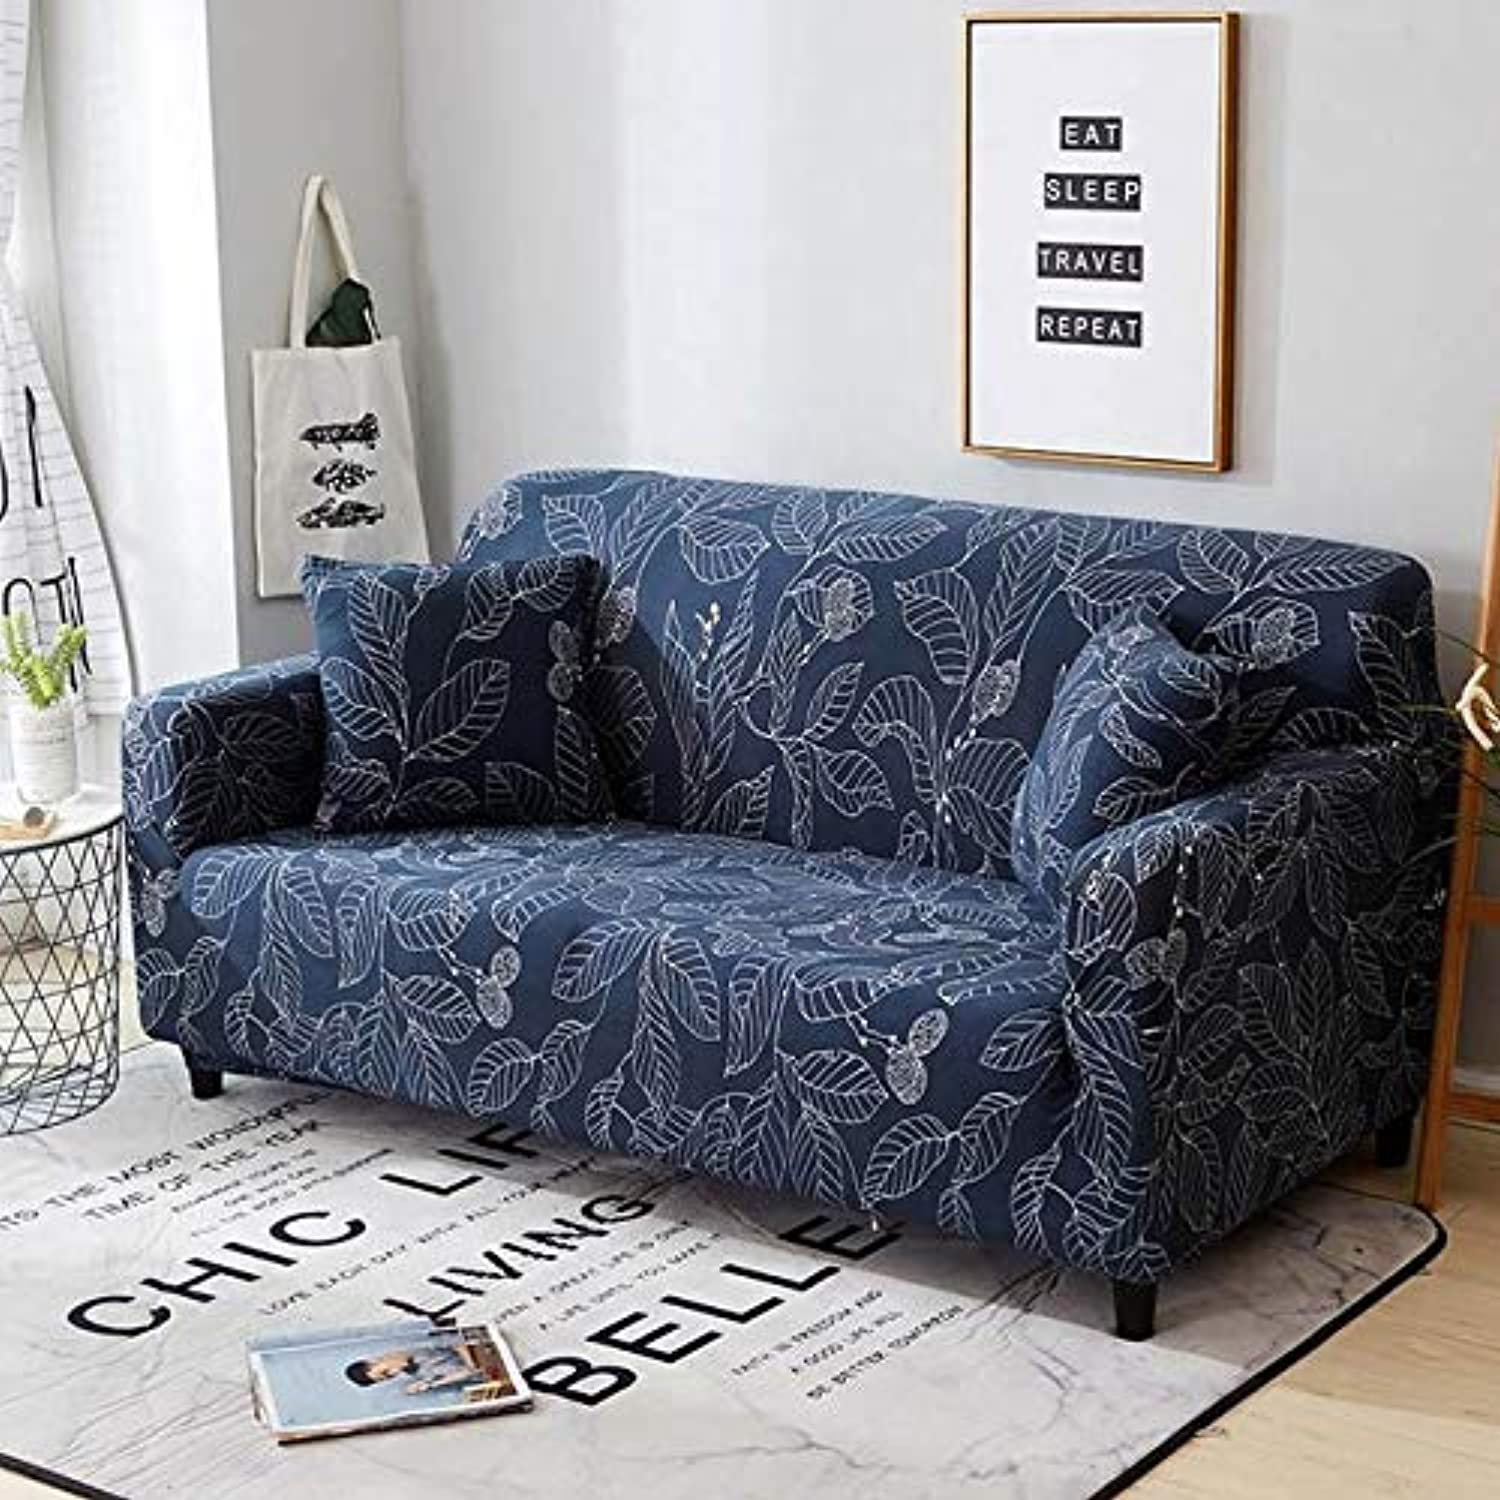 Nordic Style Modern Printing Sofa Cover Stretch Tight Wrap All-Inclusive Removable Slipcover for Living Room Furniture Covers   color 6, 2seater 145-185cm